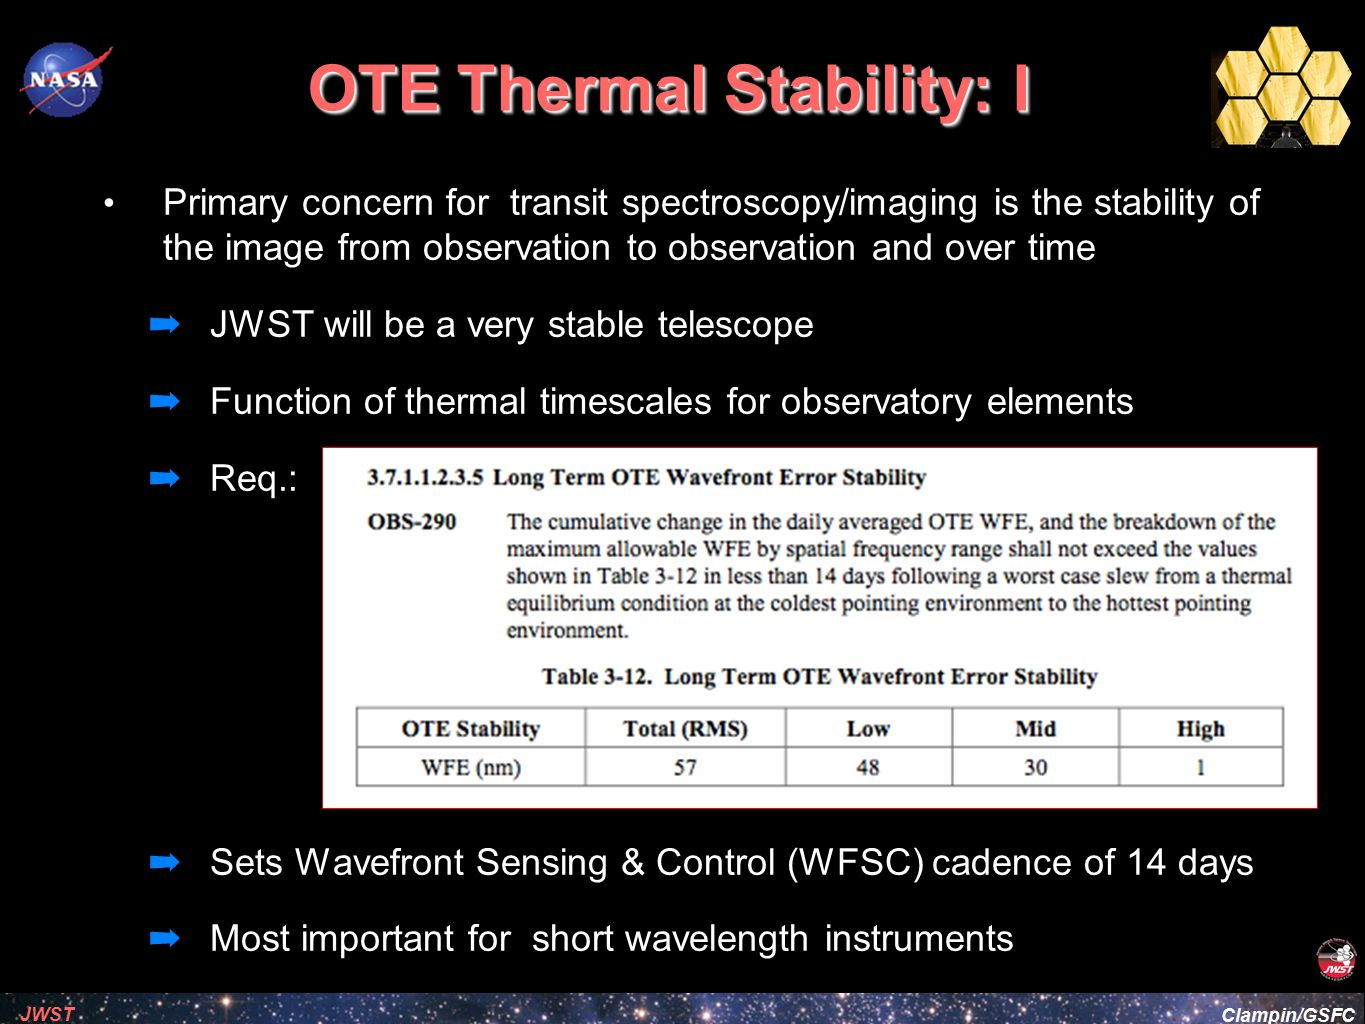 OTE Thermal Stability: I